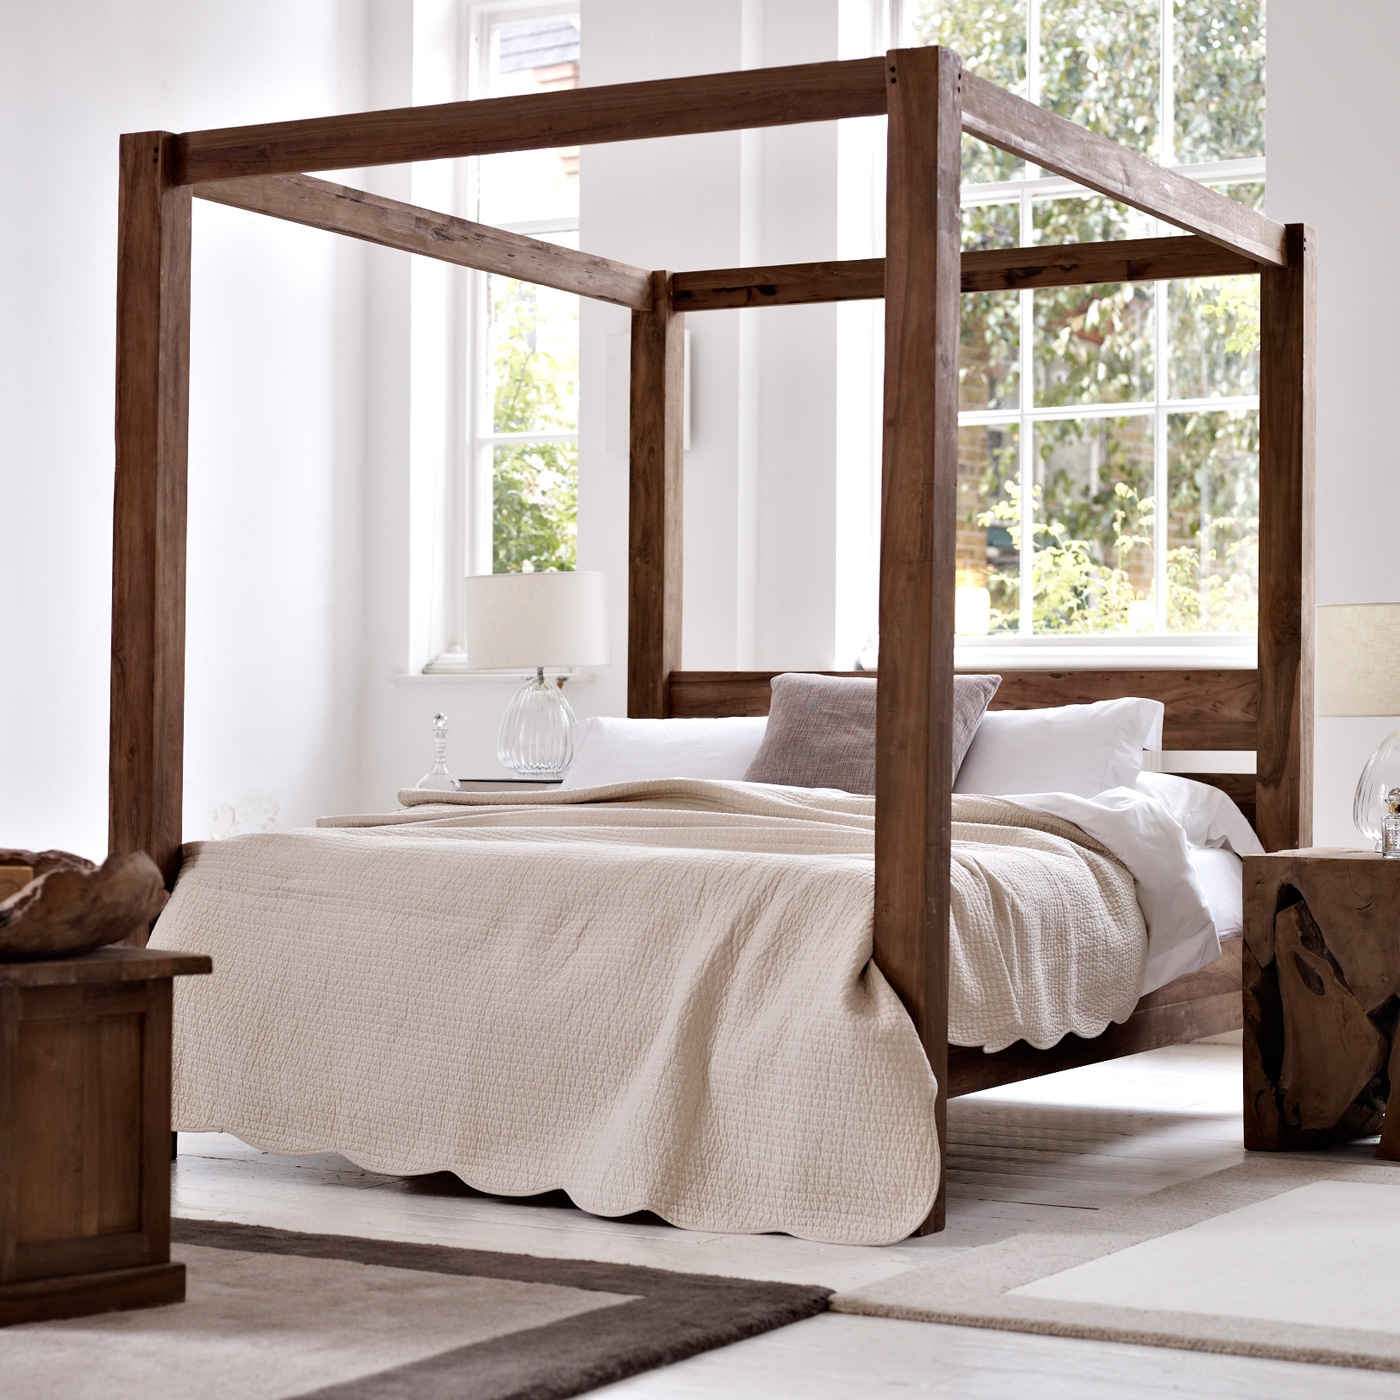 Bed Frame With 4 Posts